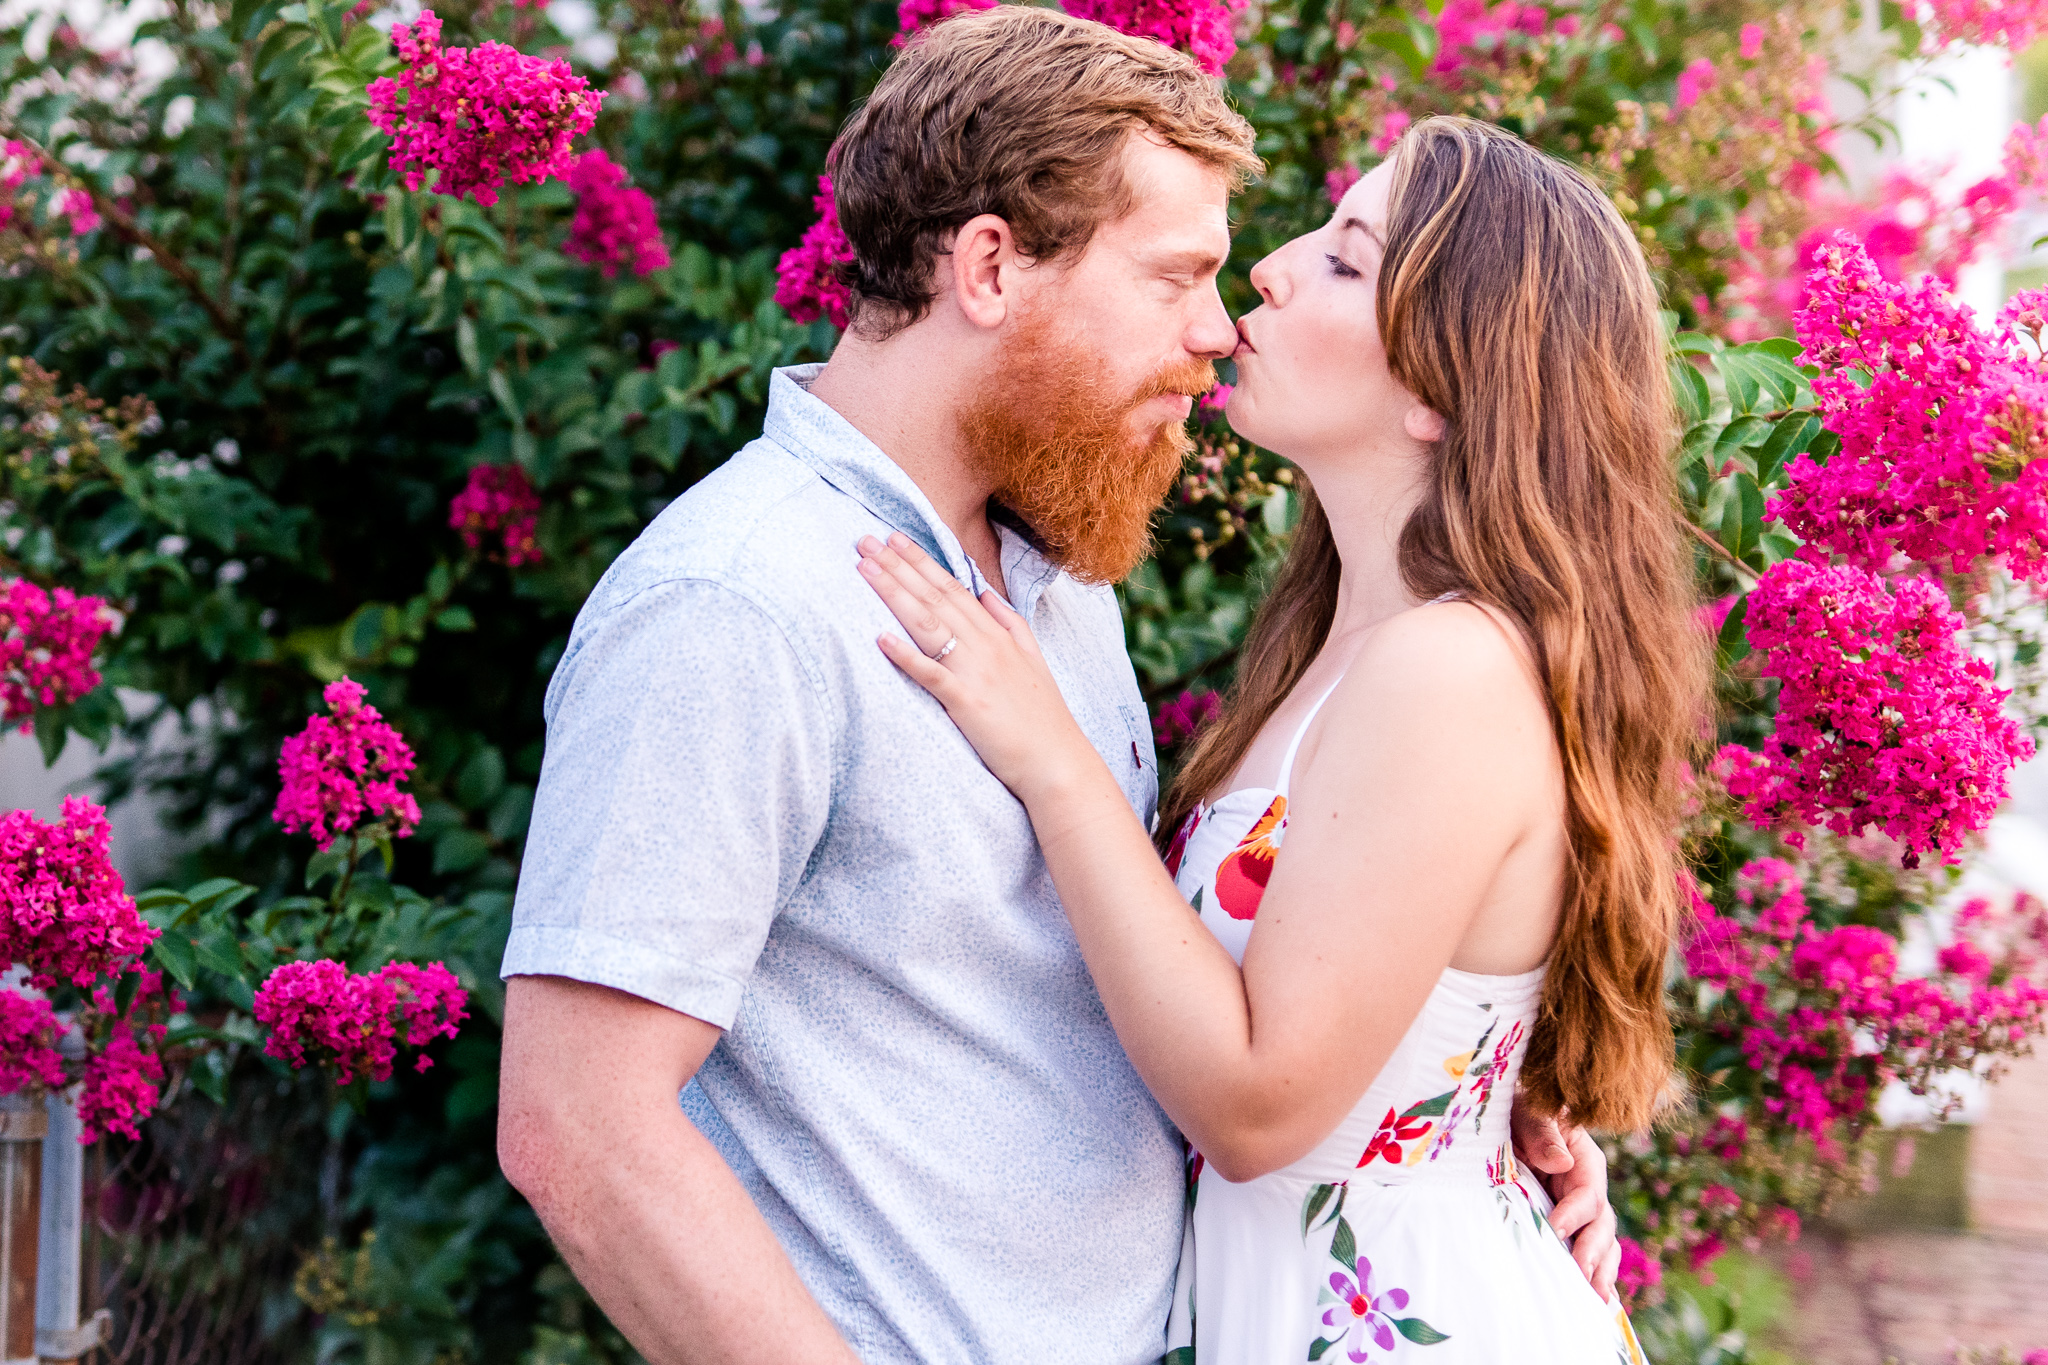 A woman kisses her fiance on the nose as they stand in front of a pink flowering tree during their summer sunset engagement session in Historic Occoquan, Northern Virginia